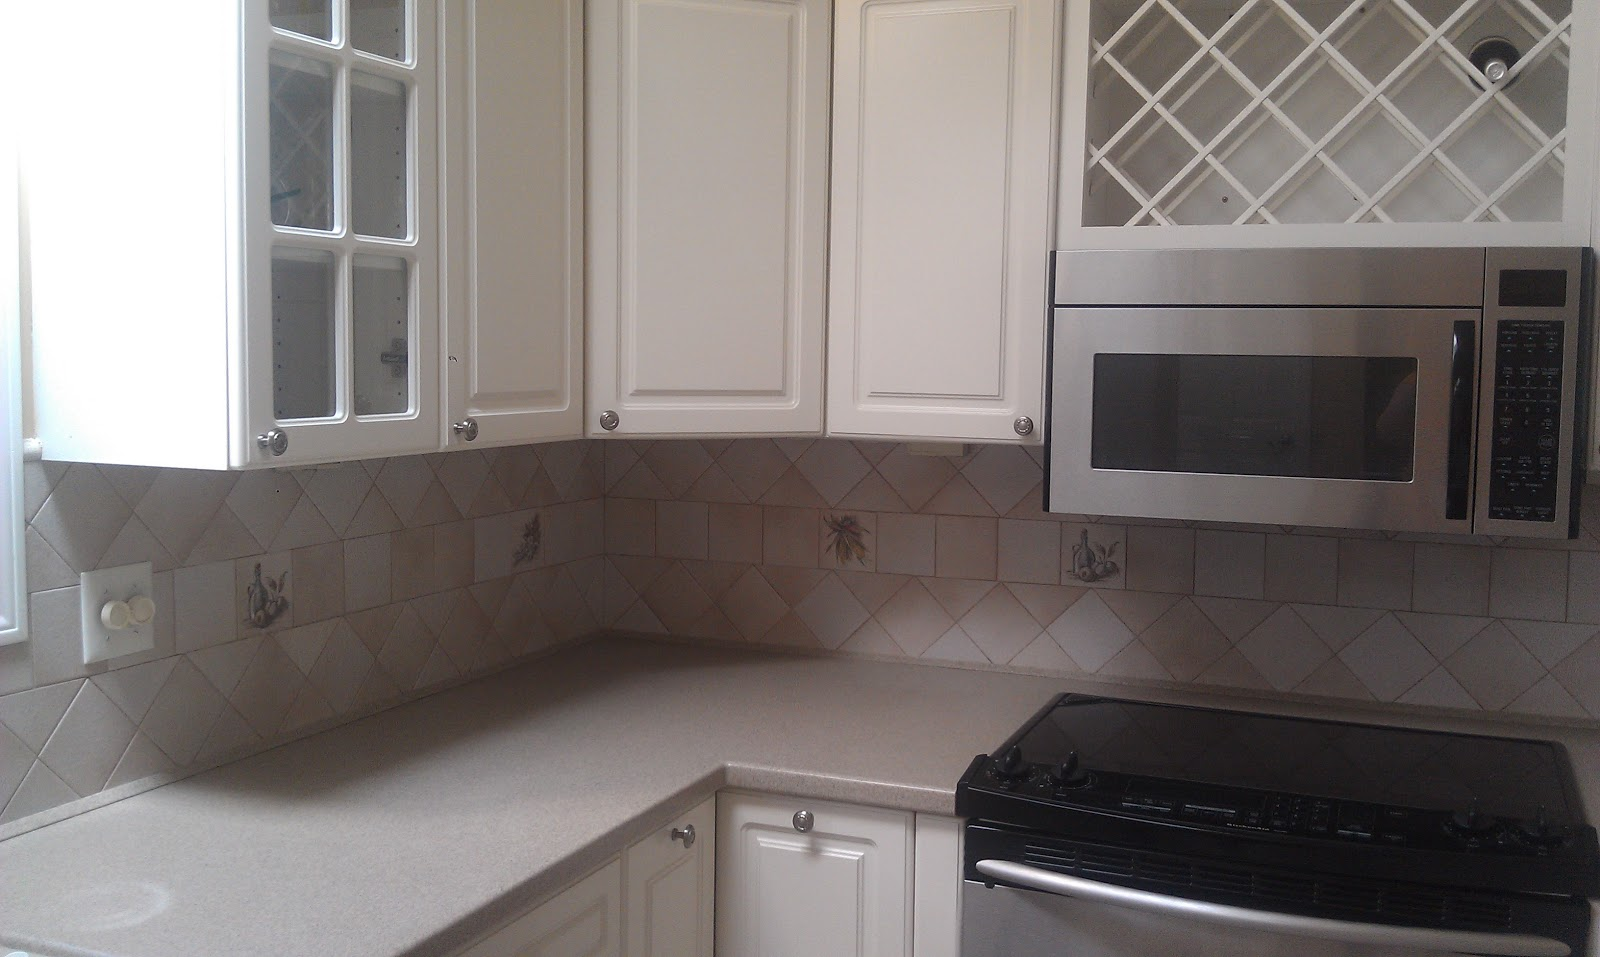 rhody life diy vinyl tiled backsplash